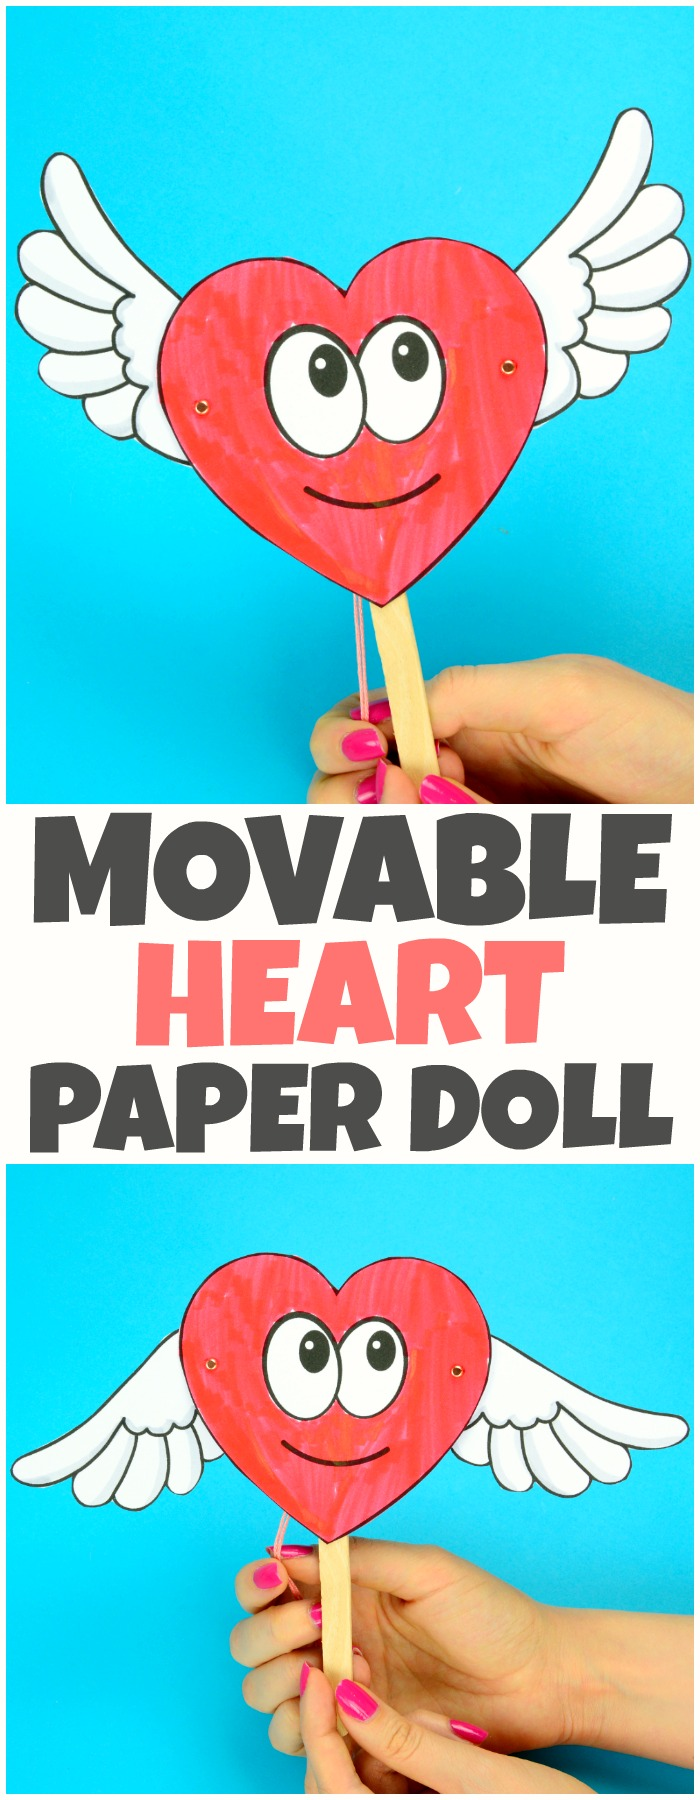 Movable Heart Paper Doll - Easy Peasy and Fun